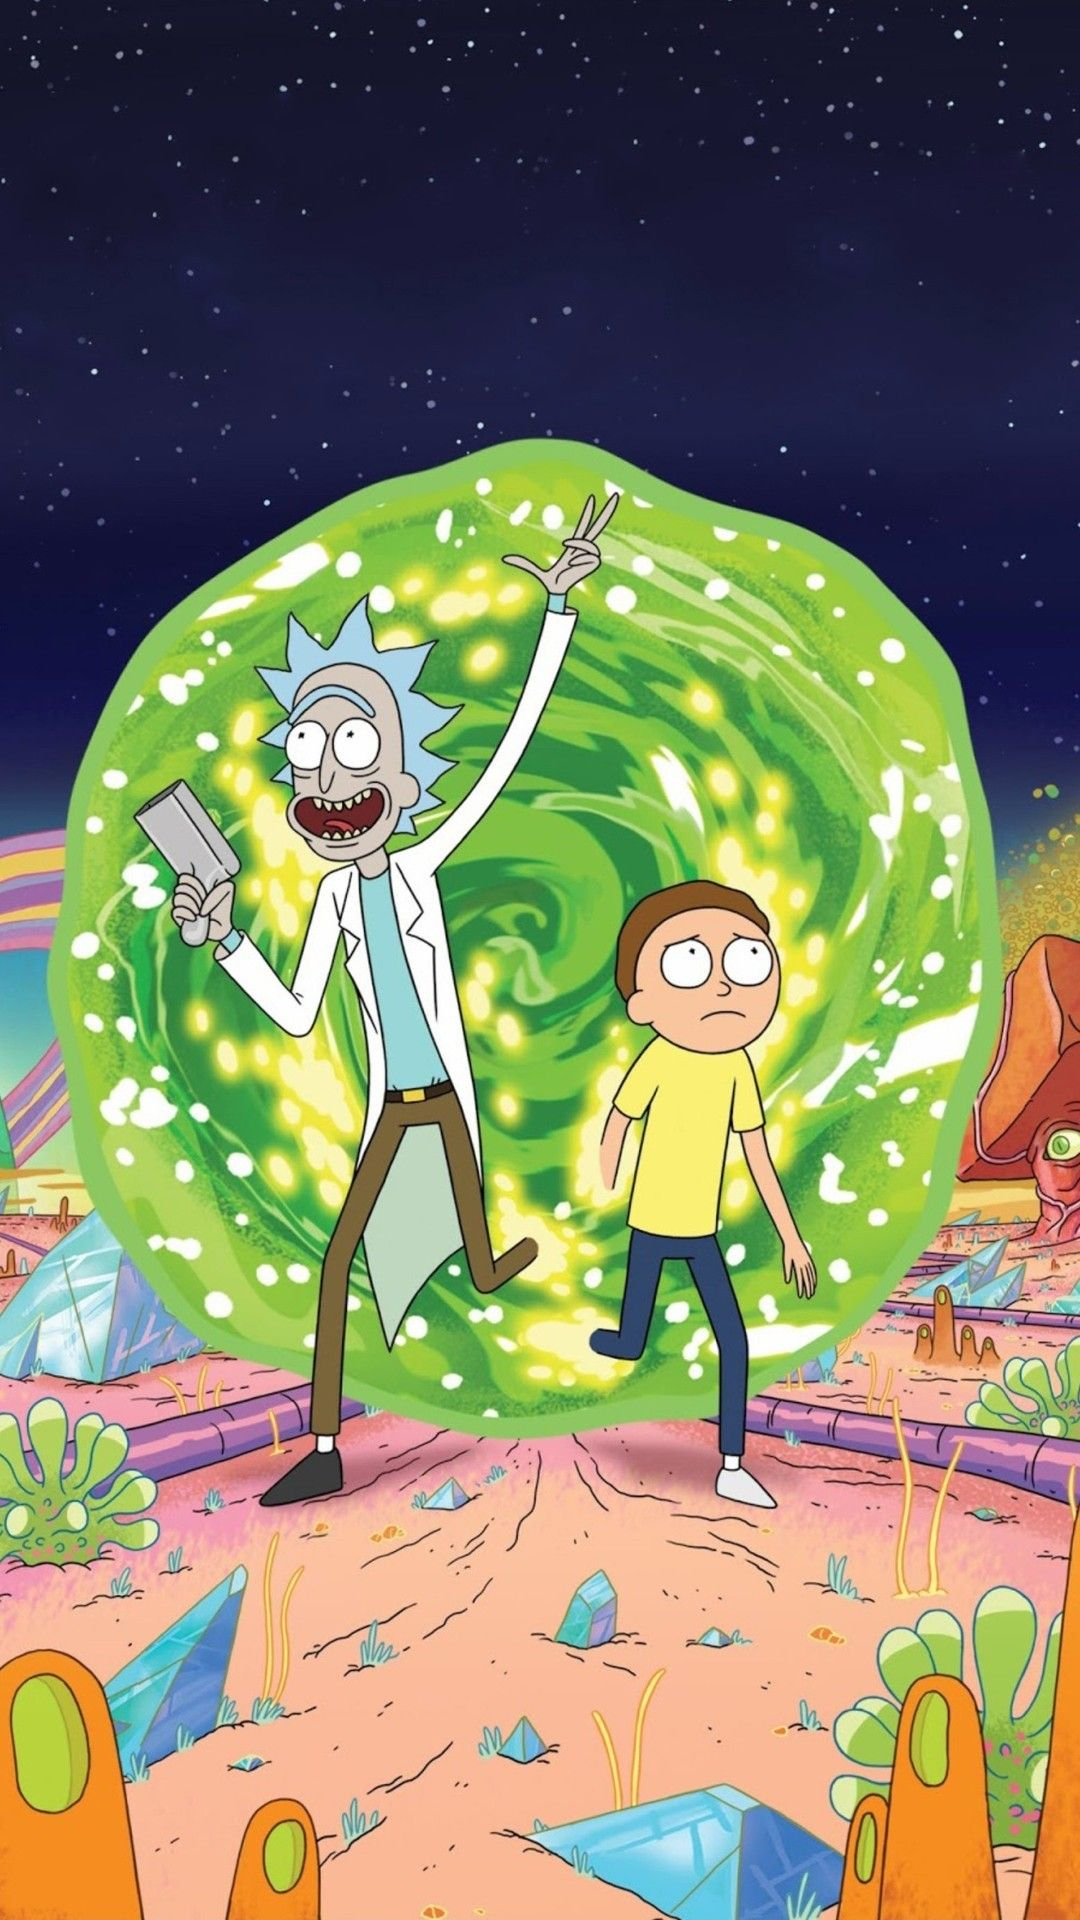 Rick And Morty Poster Movie Best Movie Poster Wallpaper Hd Rick And Morty Poster Rick And Morty Drawing Rick And Morty Stickers